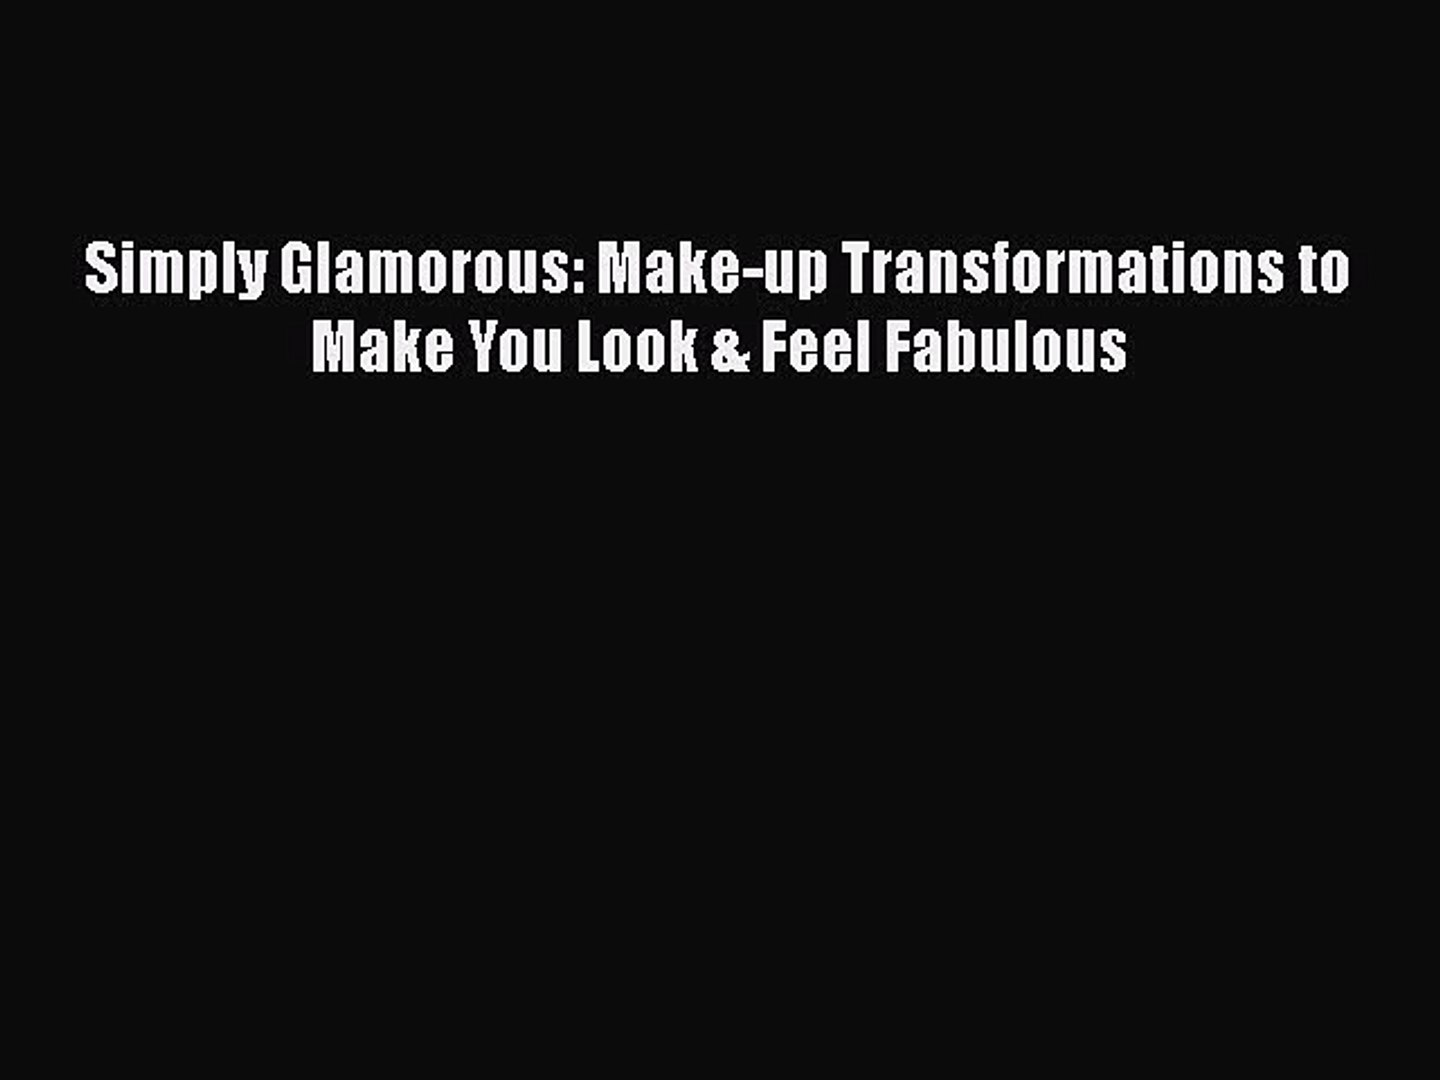 Simply Glamorous: Make-up transformations to make you look & feel fabulous